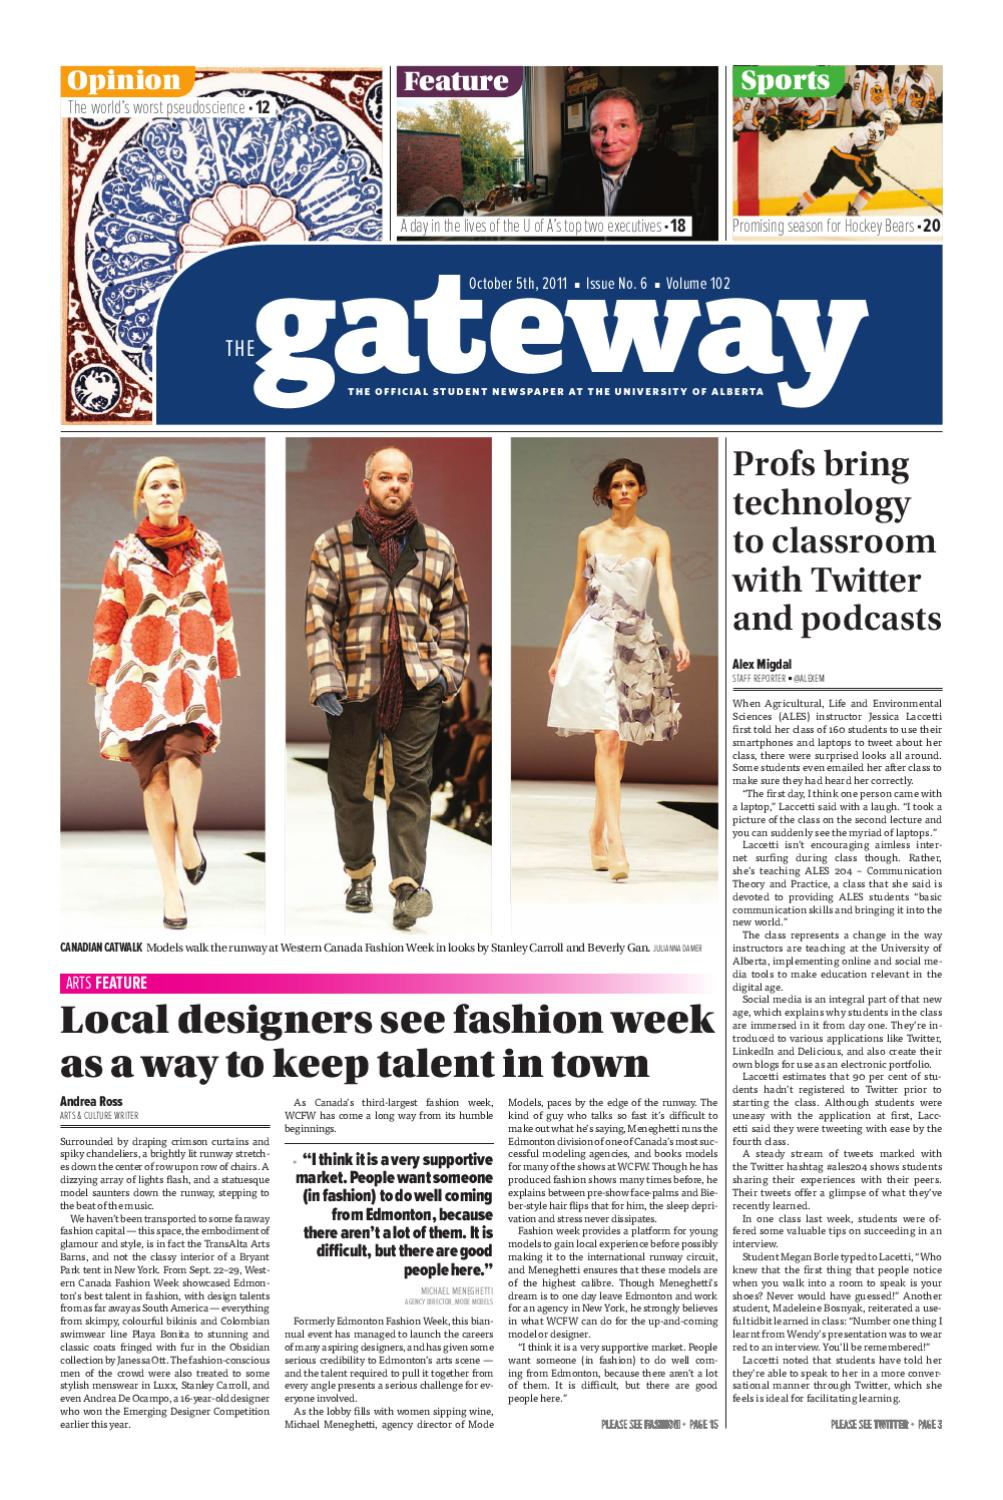 The Gateway: Volume 102, Issue 06 by The Gateway - issuu